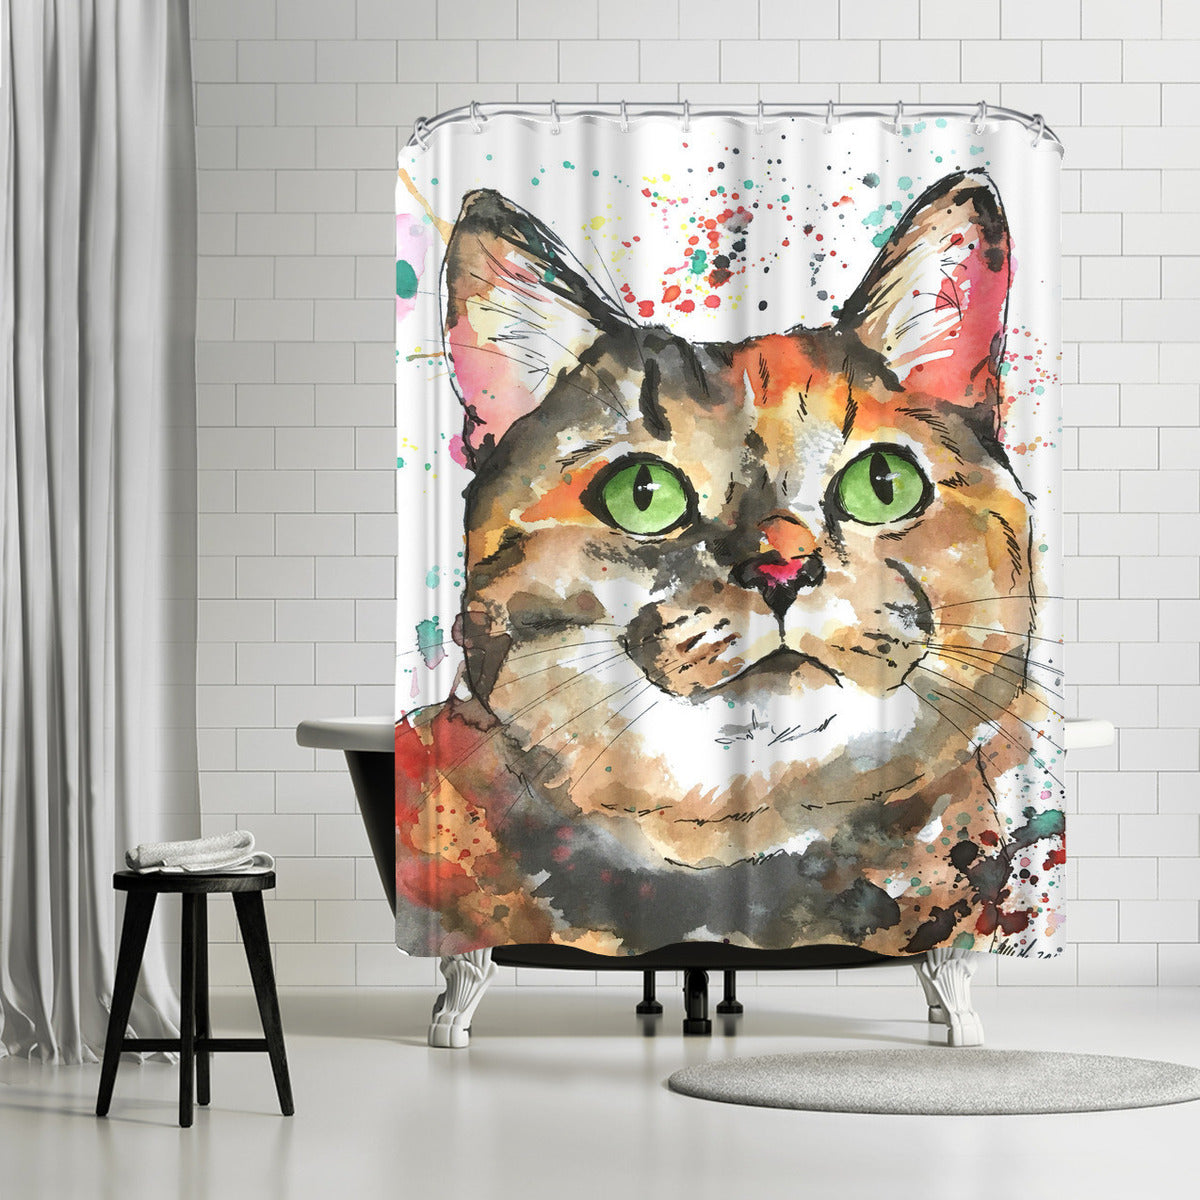 Mozzie by Allison Gray Shower Curtain - Shower Curtain - Americanflat